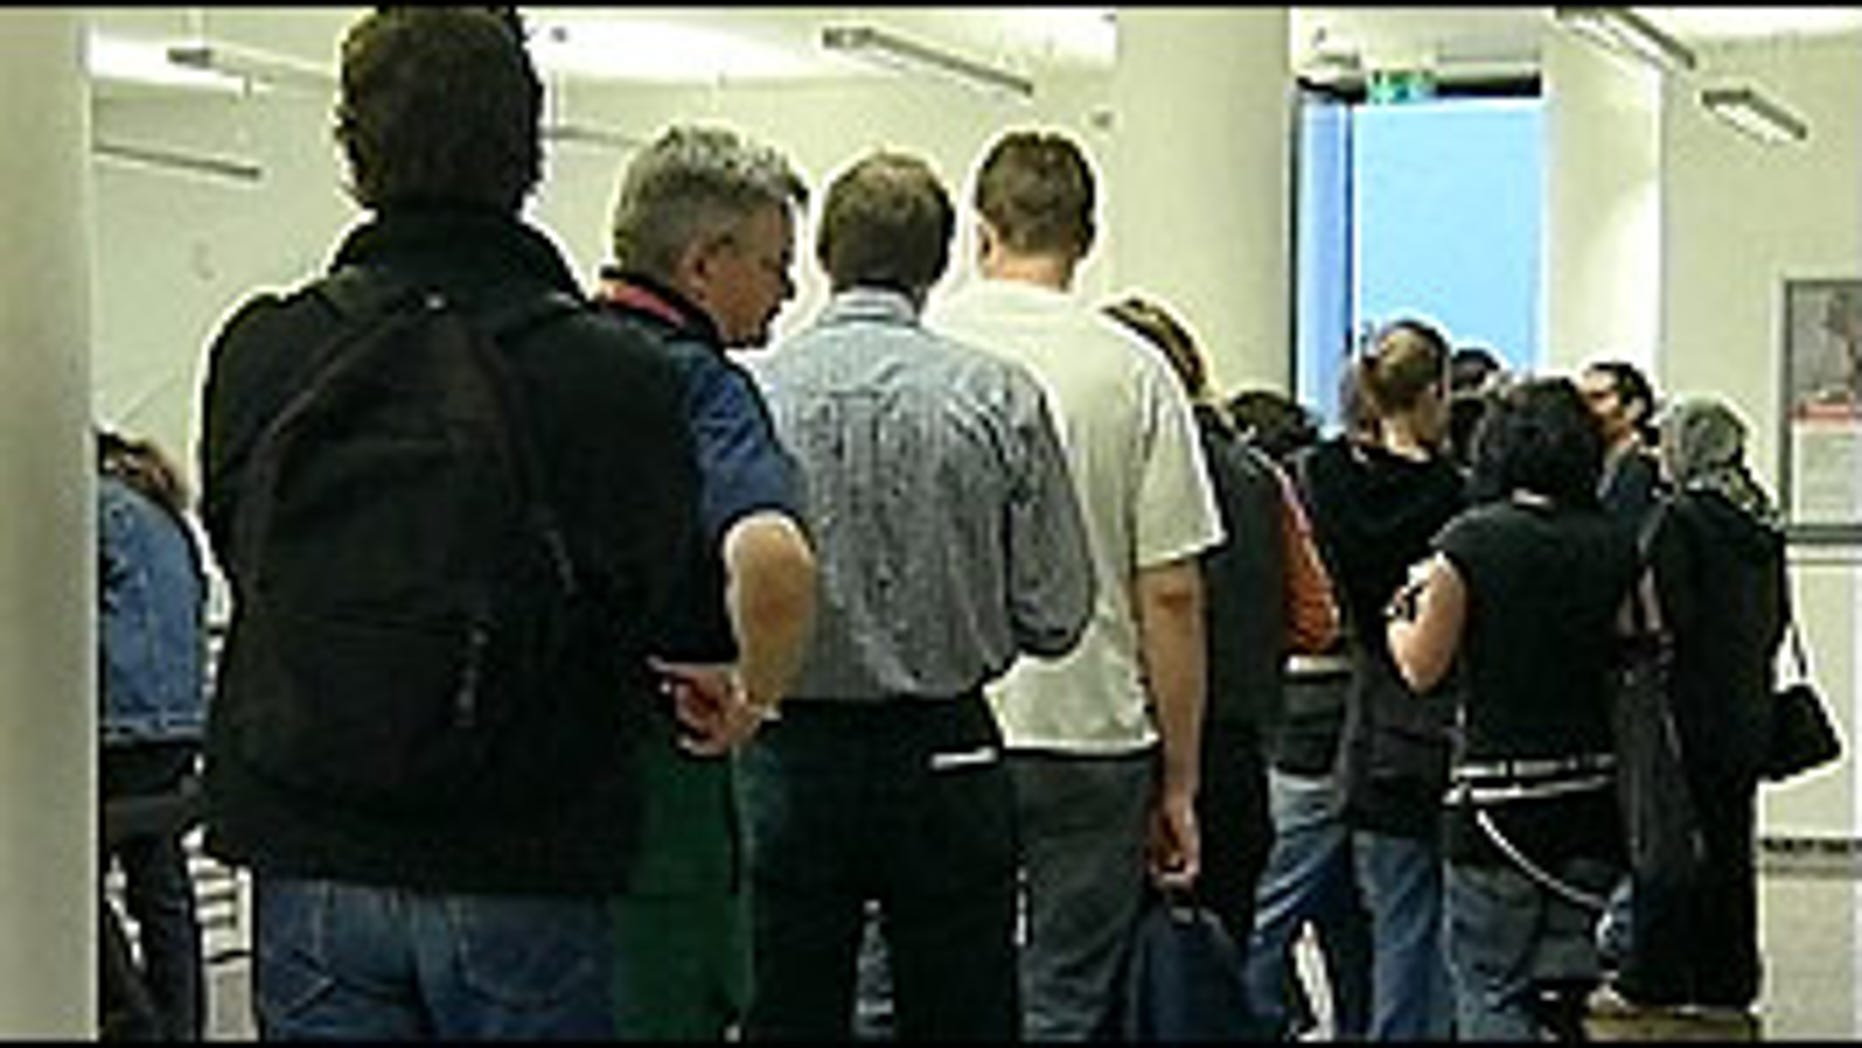 April 2011: Americans wait in line for unemployment benefits